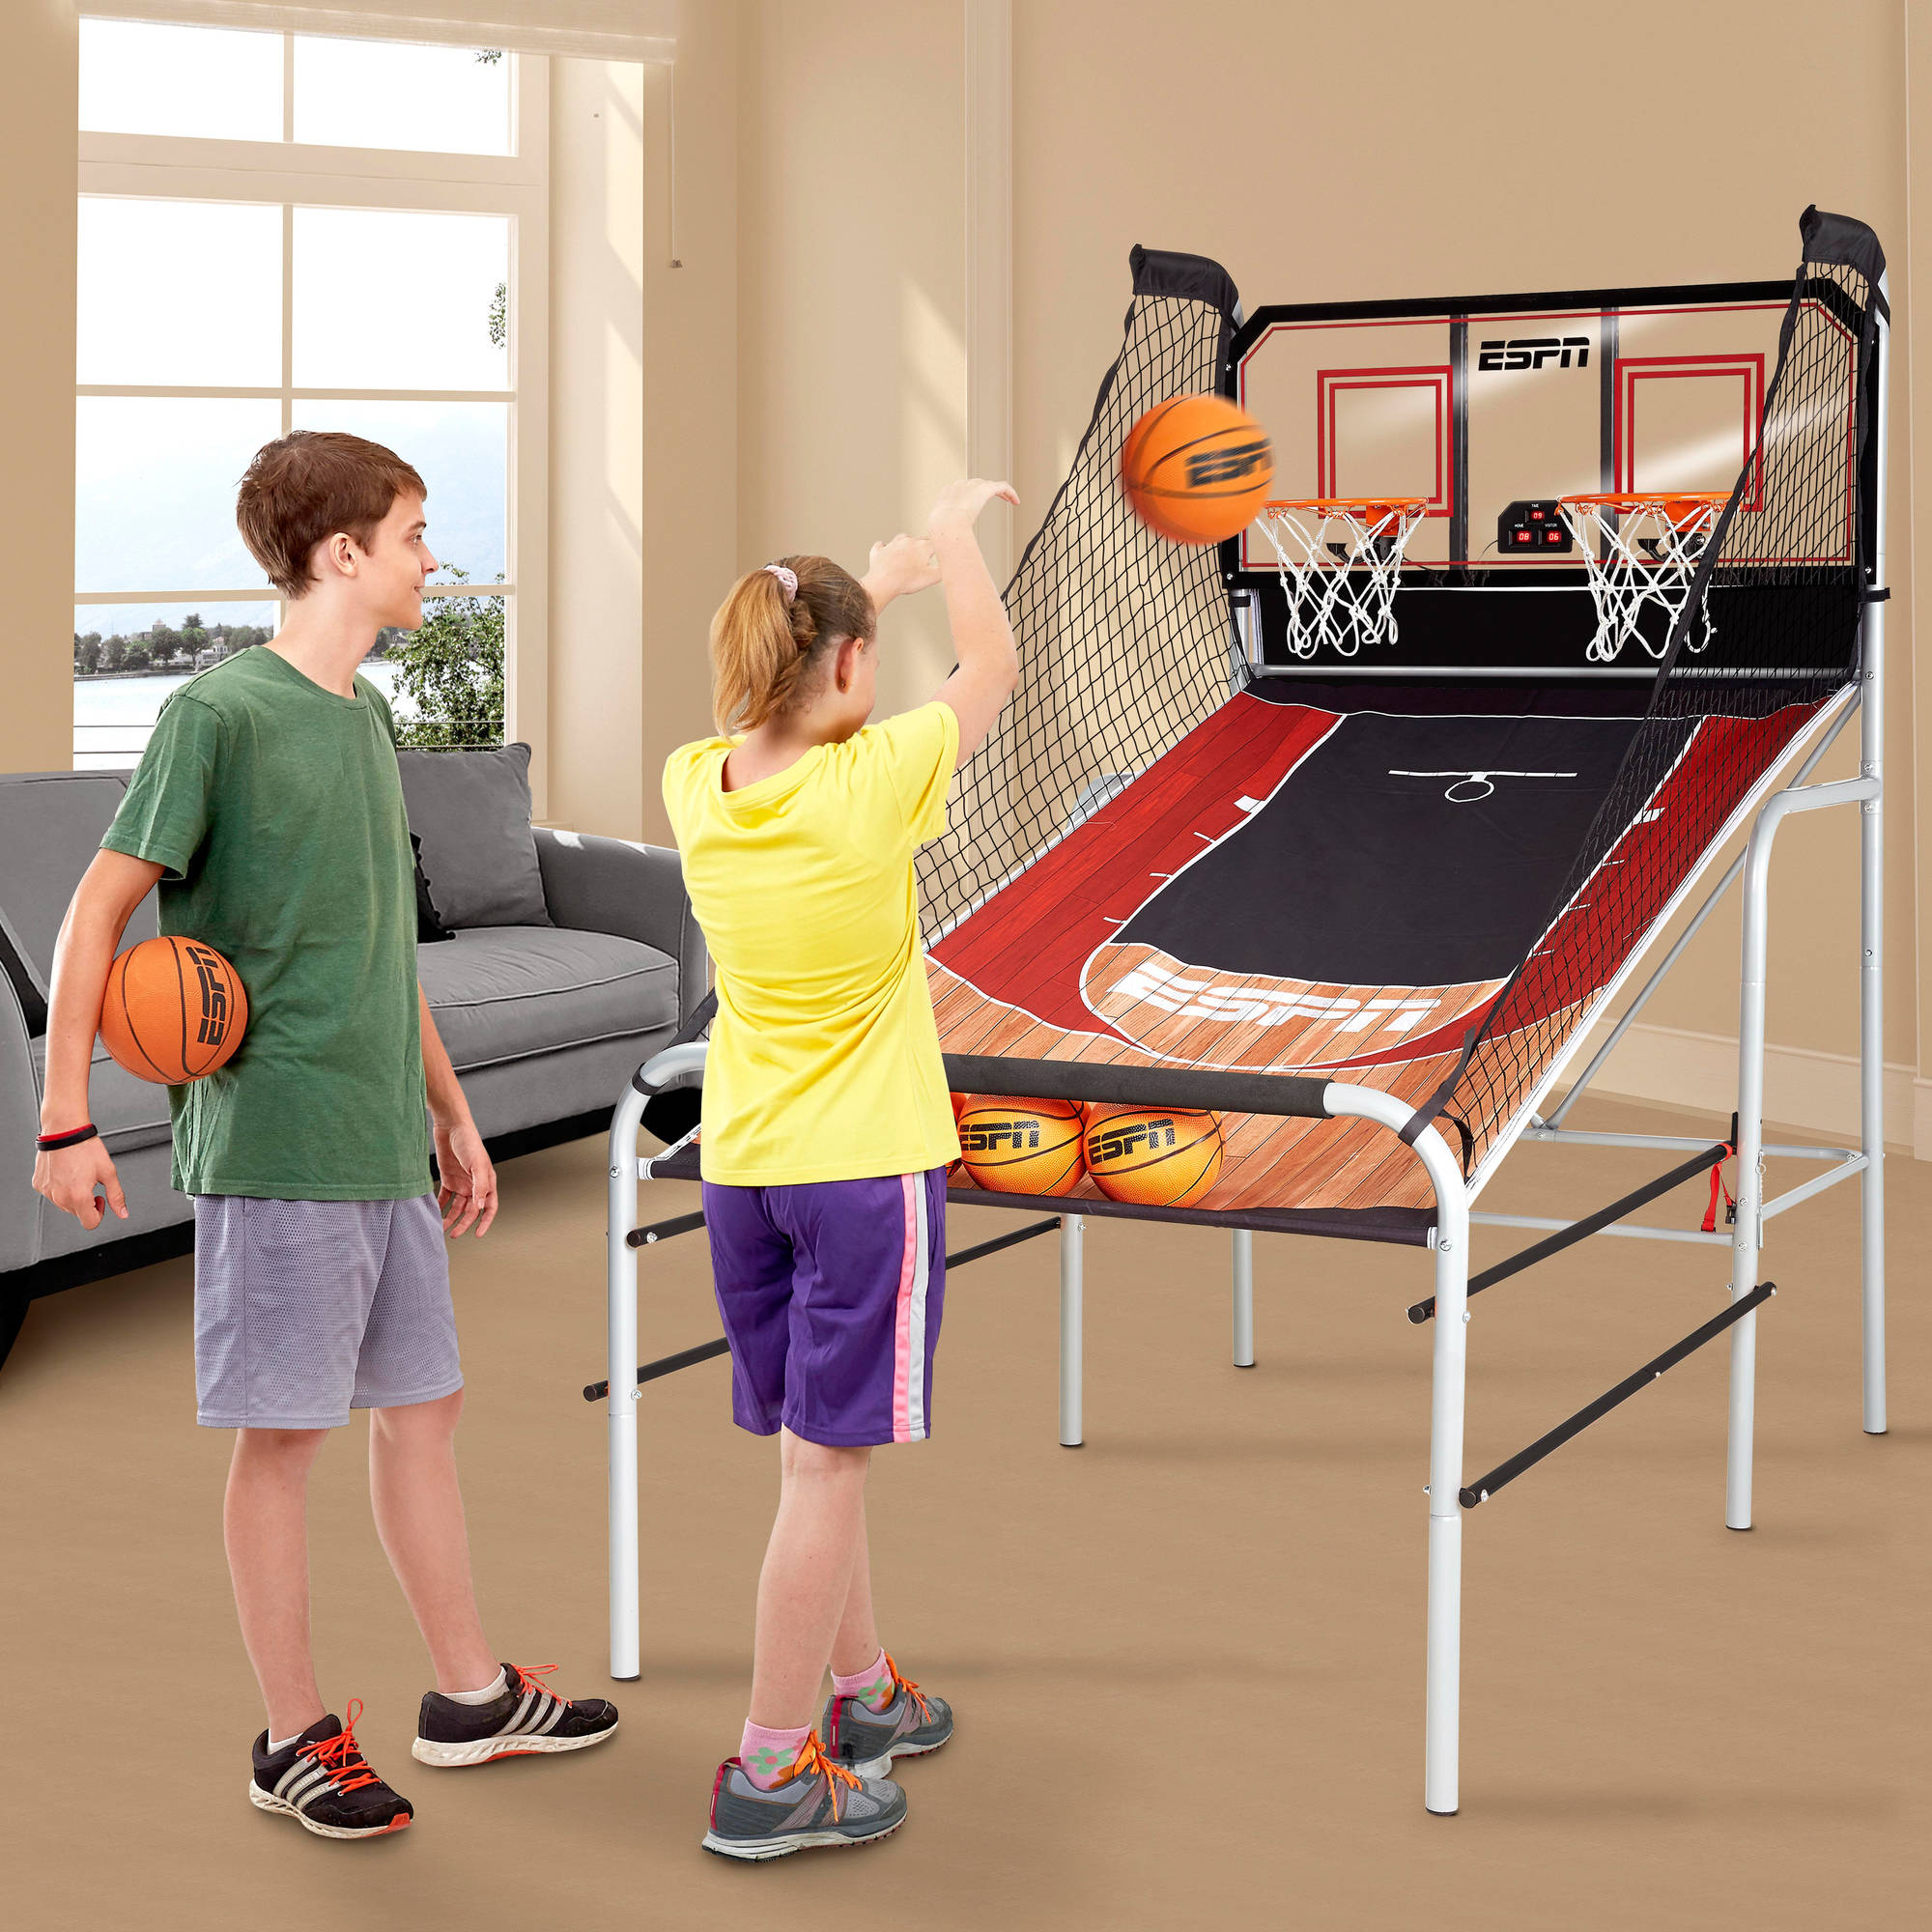 ESPN Premium 2-Player Basketball Game with Authentic Clear Backboard